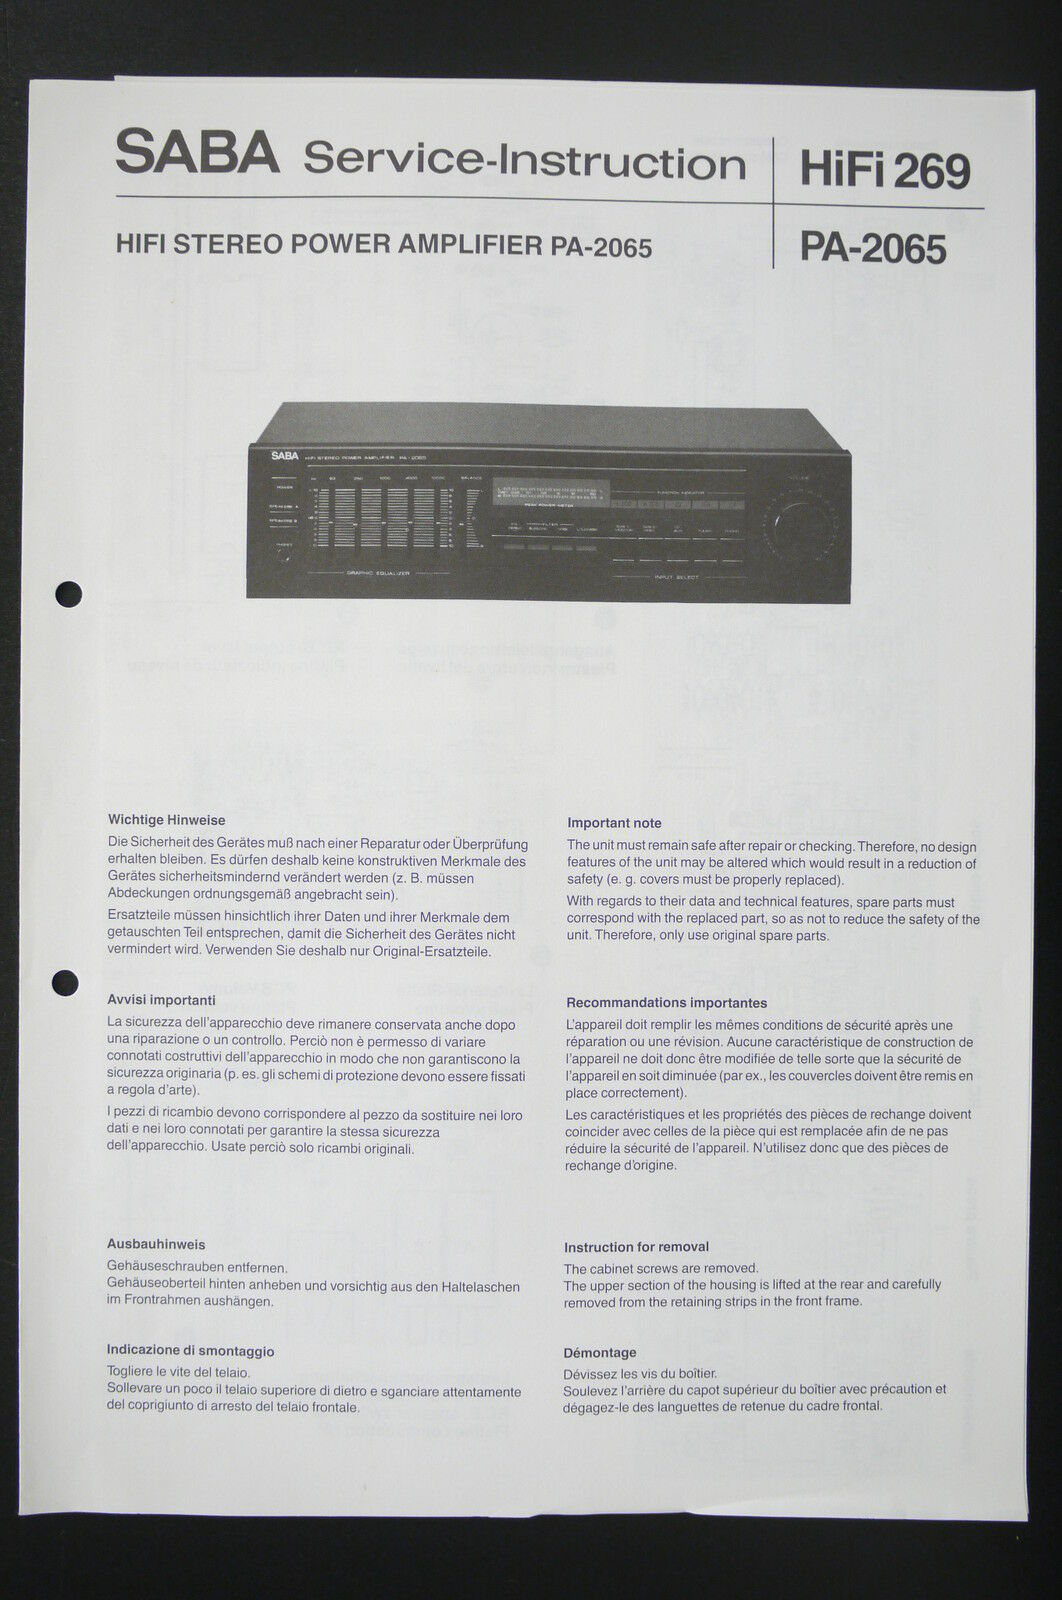 Pa Amp Wiring Diagram Saba Stereo Power Amplifier 2065 Service Instruction 1 Of 1only Available